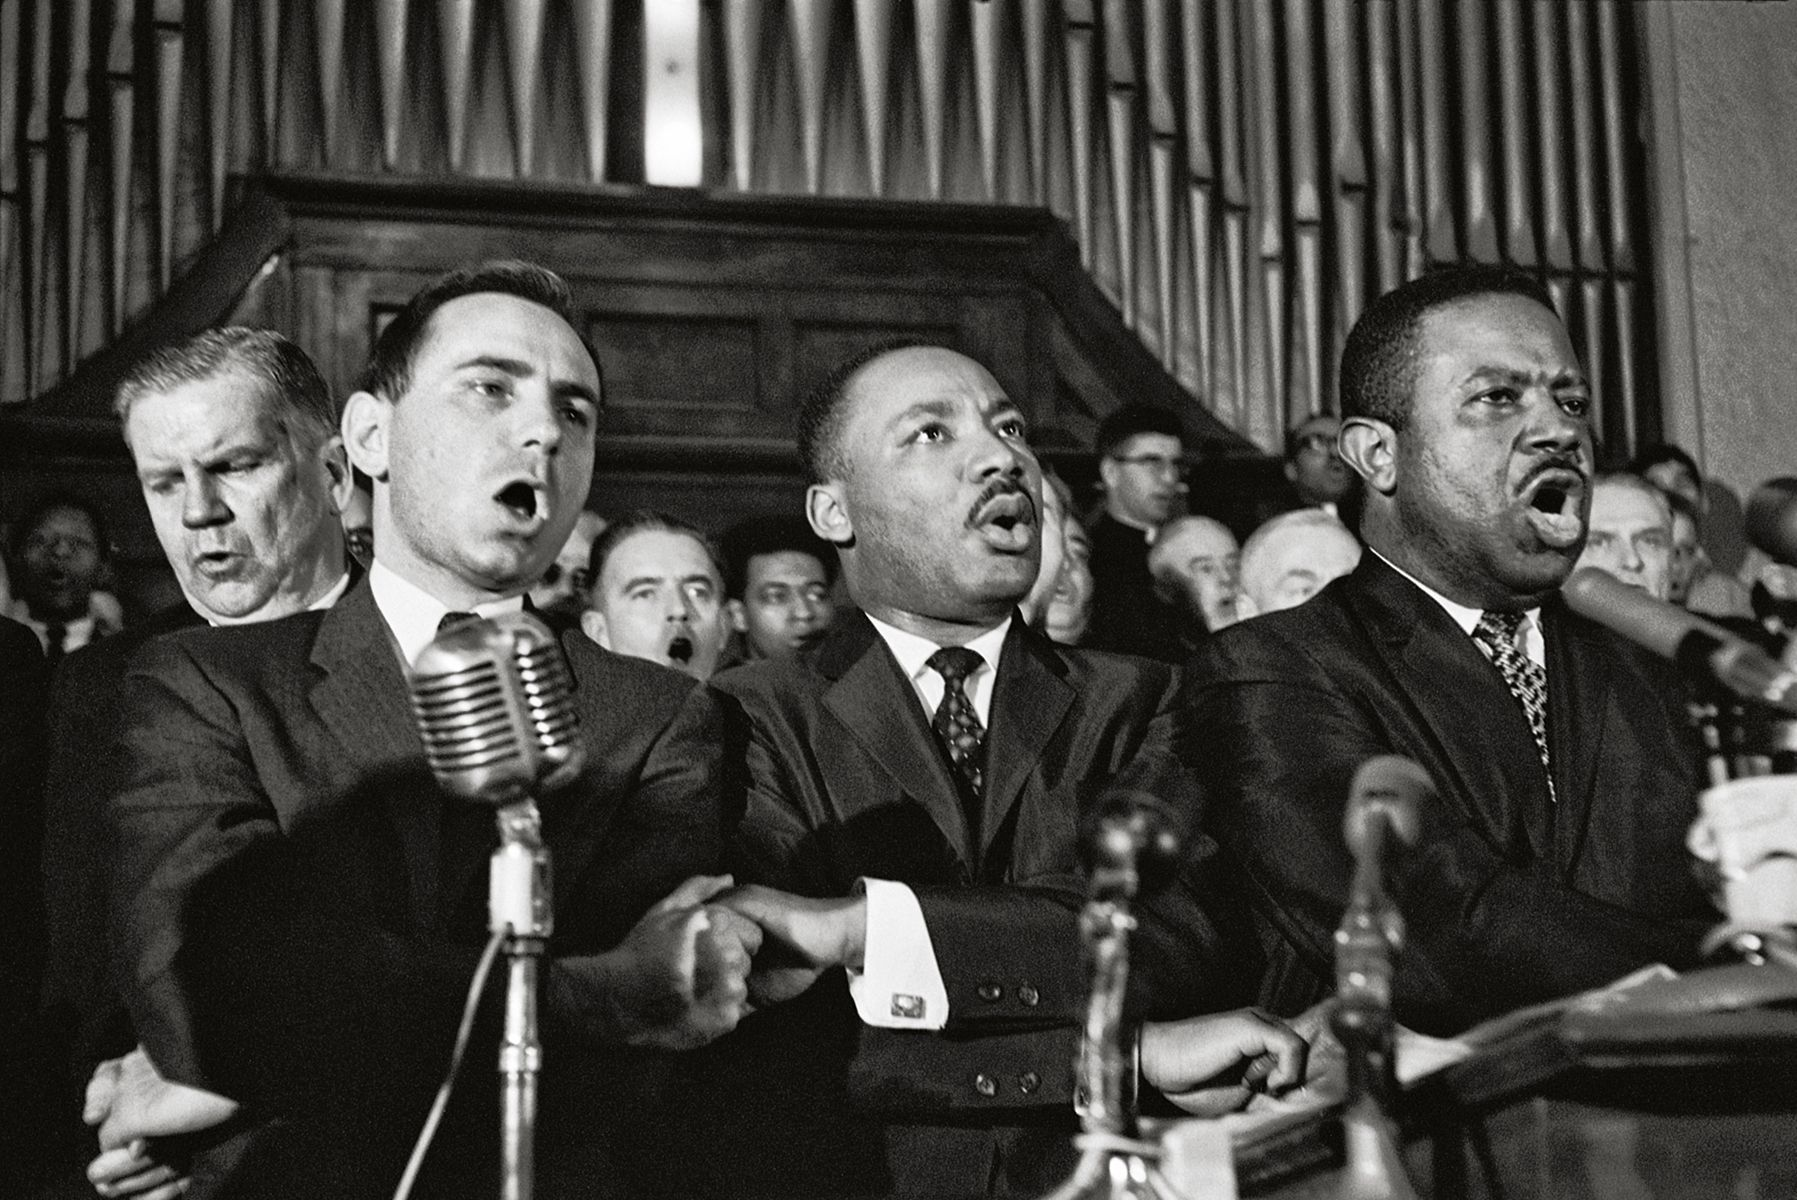 """King and Abernathy Sing """"We Shall Overcome,"""" Brown Church, Selma, 1965, 16 x 20 Inches, Silver Gelatin Photograph, Edition of 25"""